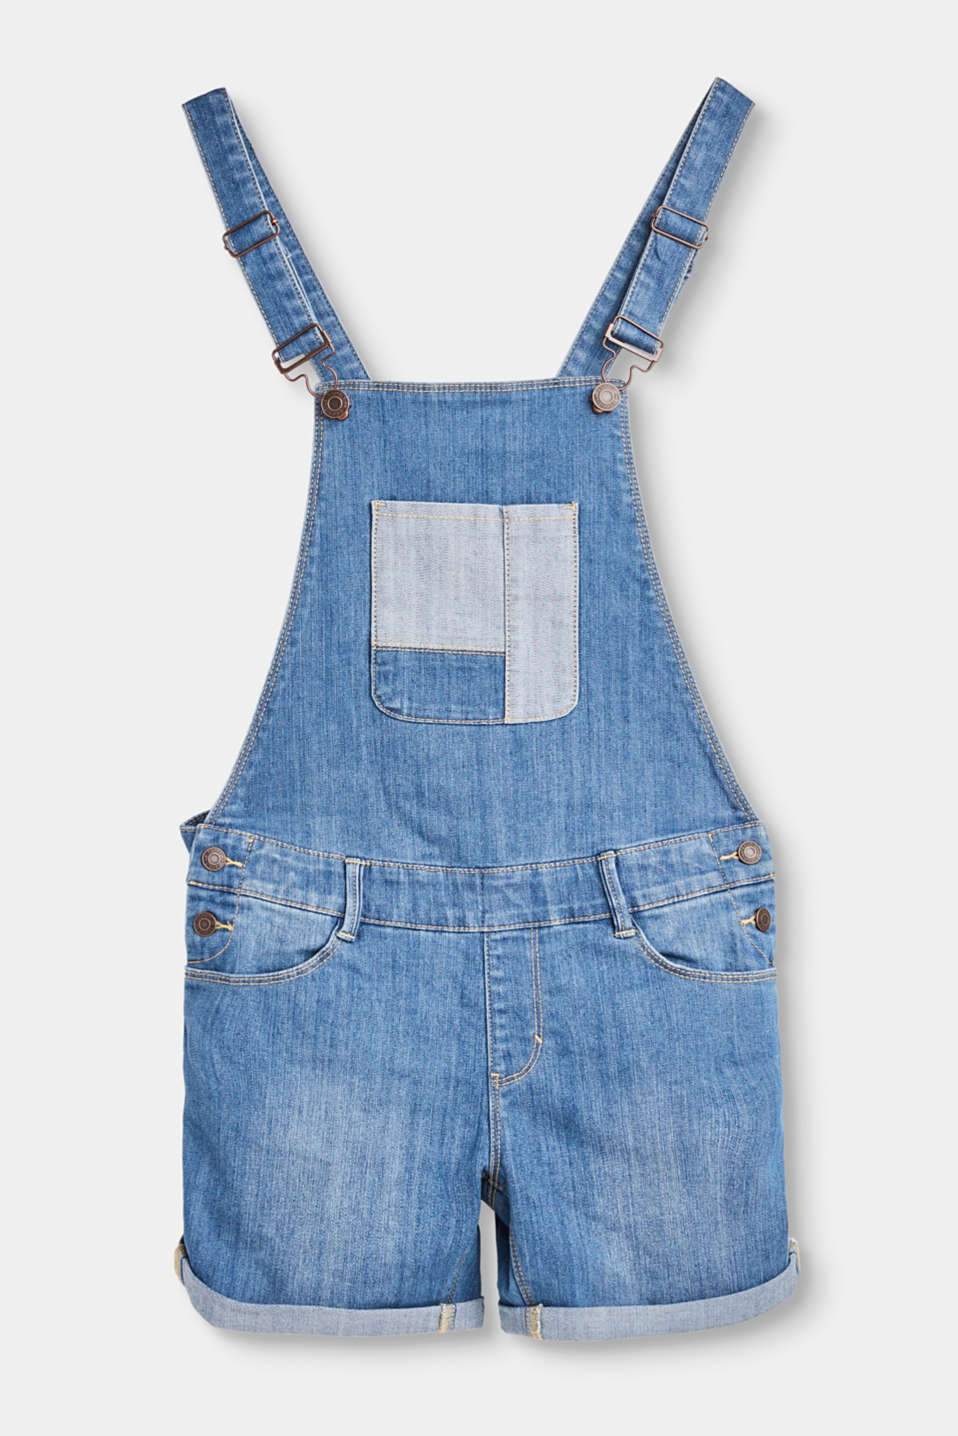 Deze korte tuinbroek van gewassen denim met stretch is casual en modieus.